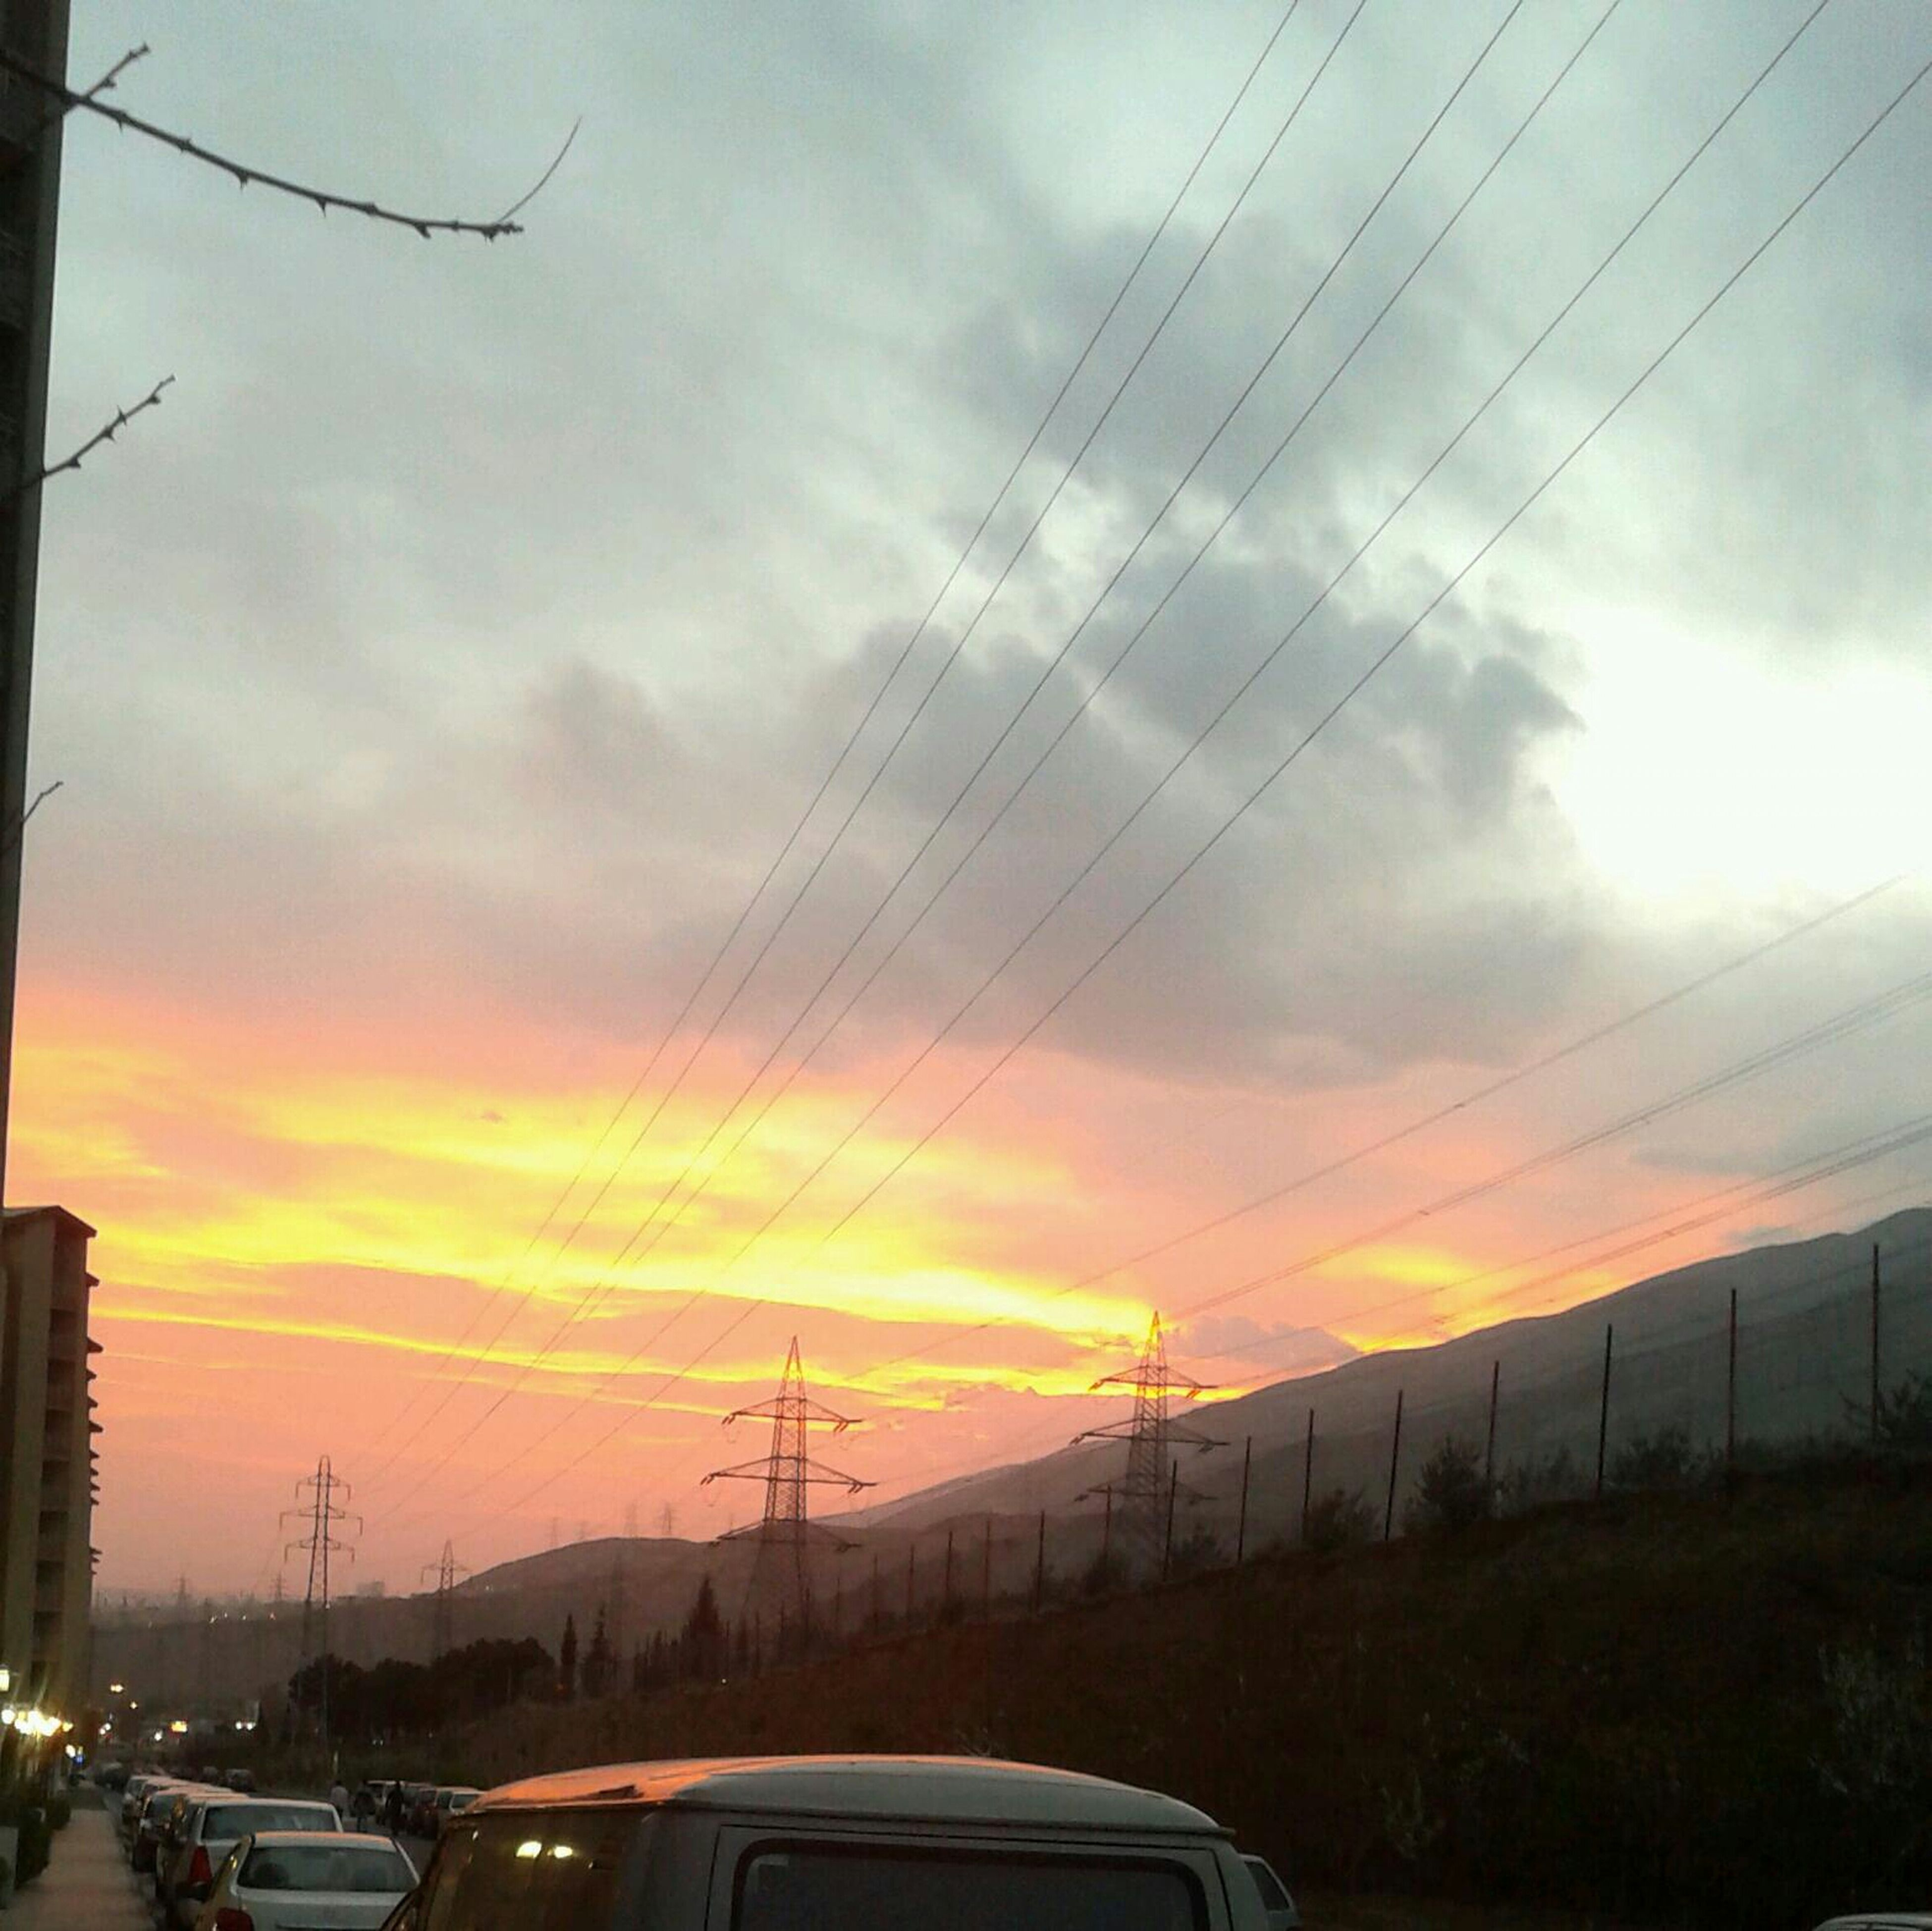 transportation, car, land vehicle, sunset, mode of transport, sky, road, cloud - sky, electricity pylon, power line, orange color, street, silhouette, cloudy, on the move, cloud, connection, dramatic sky, travel, cable